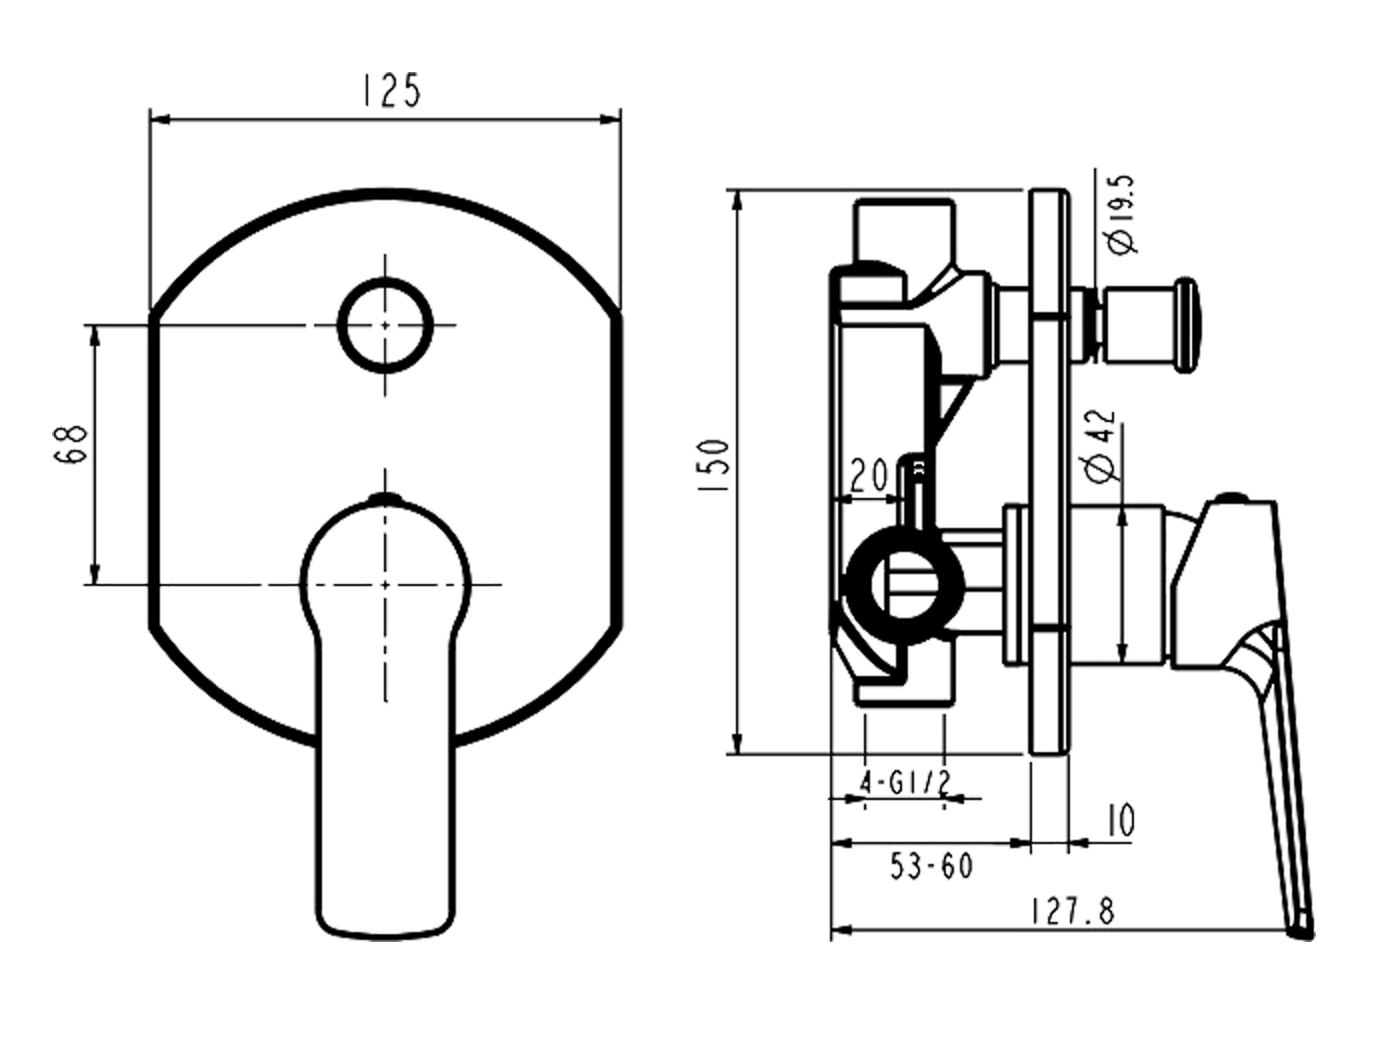 In Wall Mixer W Diverter Novas Schematic Drawing